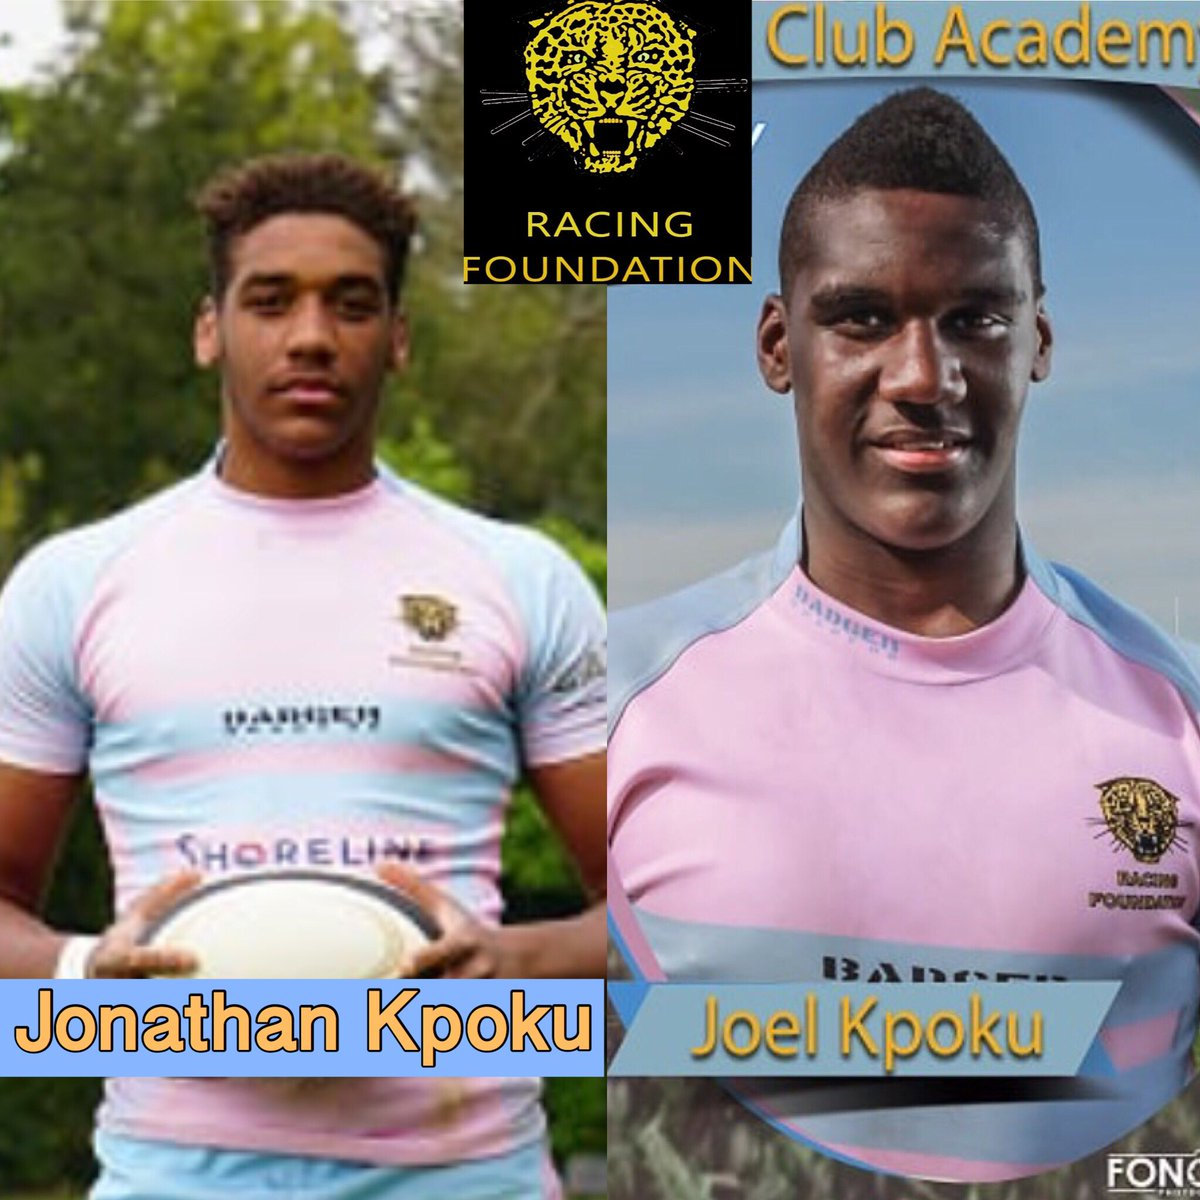 Happy 18th BD to the Kpoku twins from all @Racing_7s #racingfoundation #rugbyfamily #rugby7s #pathway @sarriessupport @Saracens<br>http://pic.twitter.com/8Gkll8Zyjv